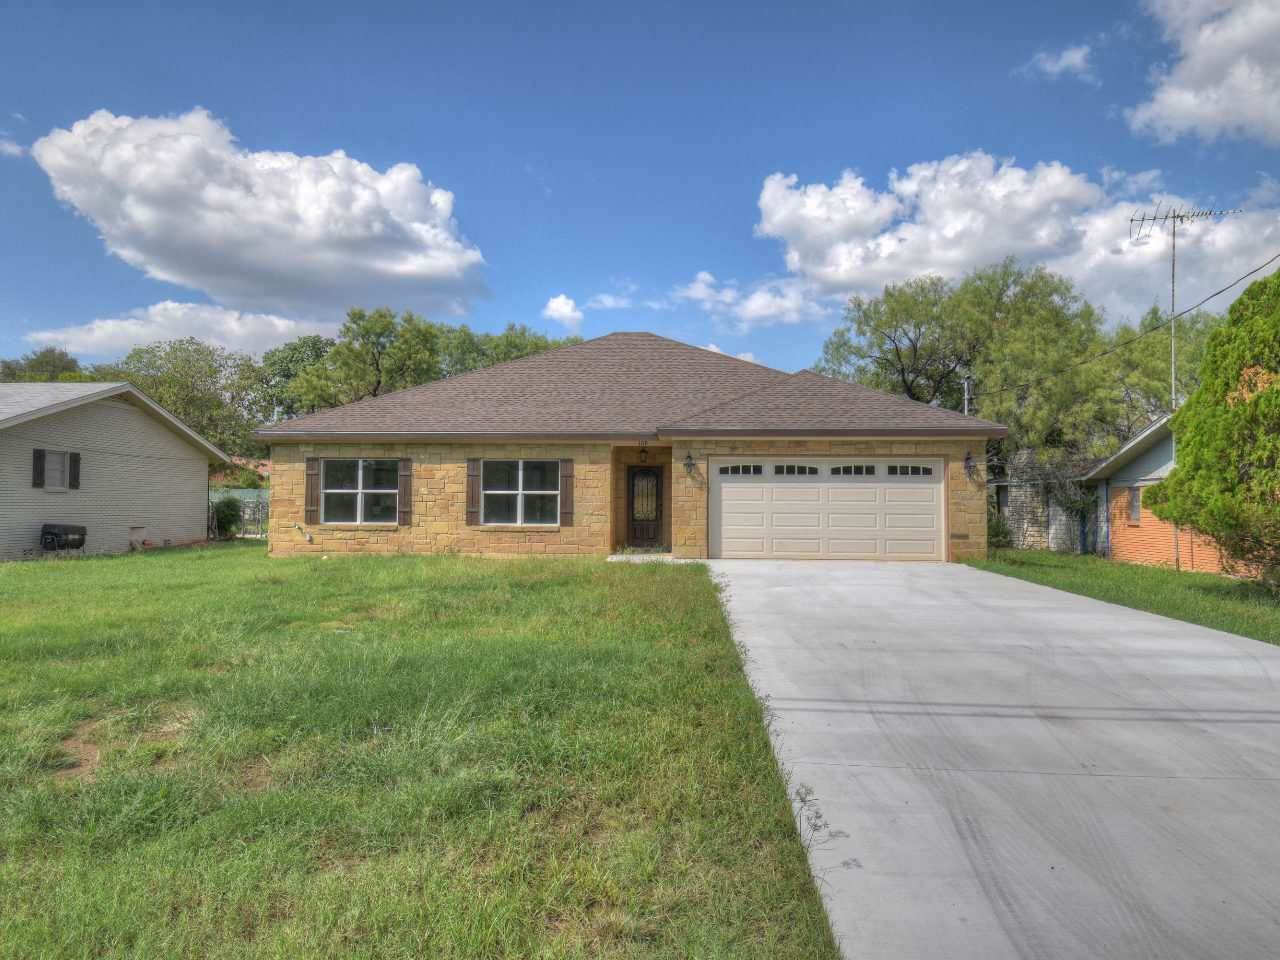 Casa Unifamiliar por un Venta en 108 W Heron Highland Haven, Texas 78654 Estados Unidos